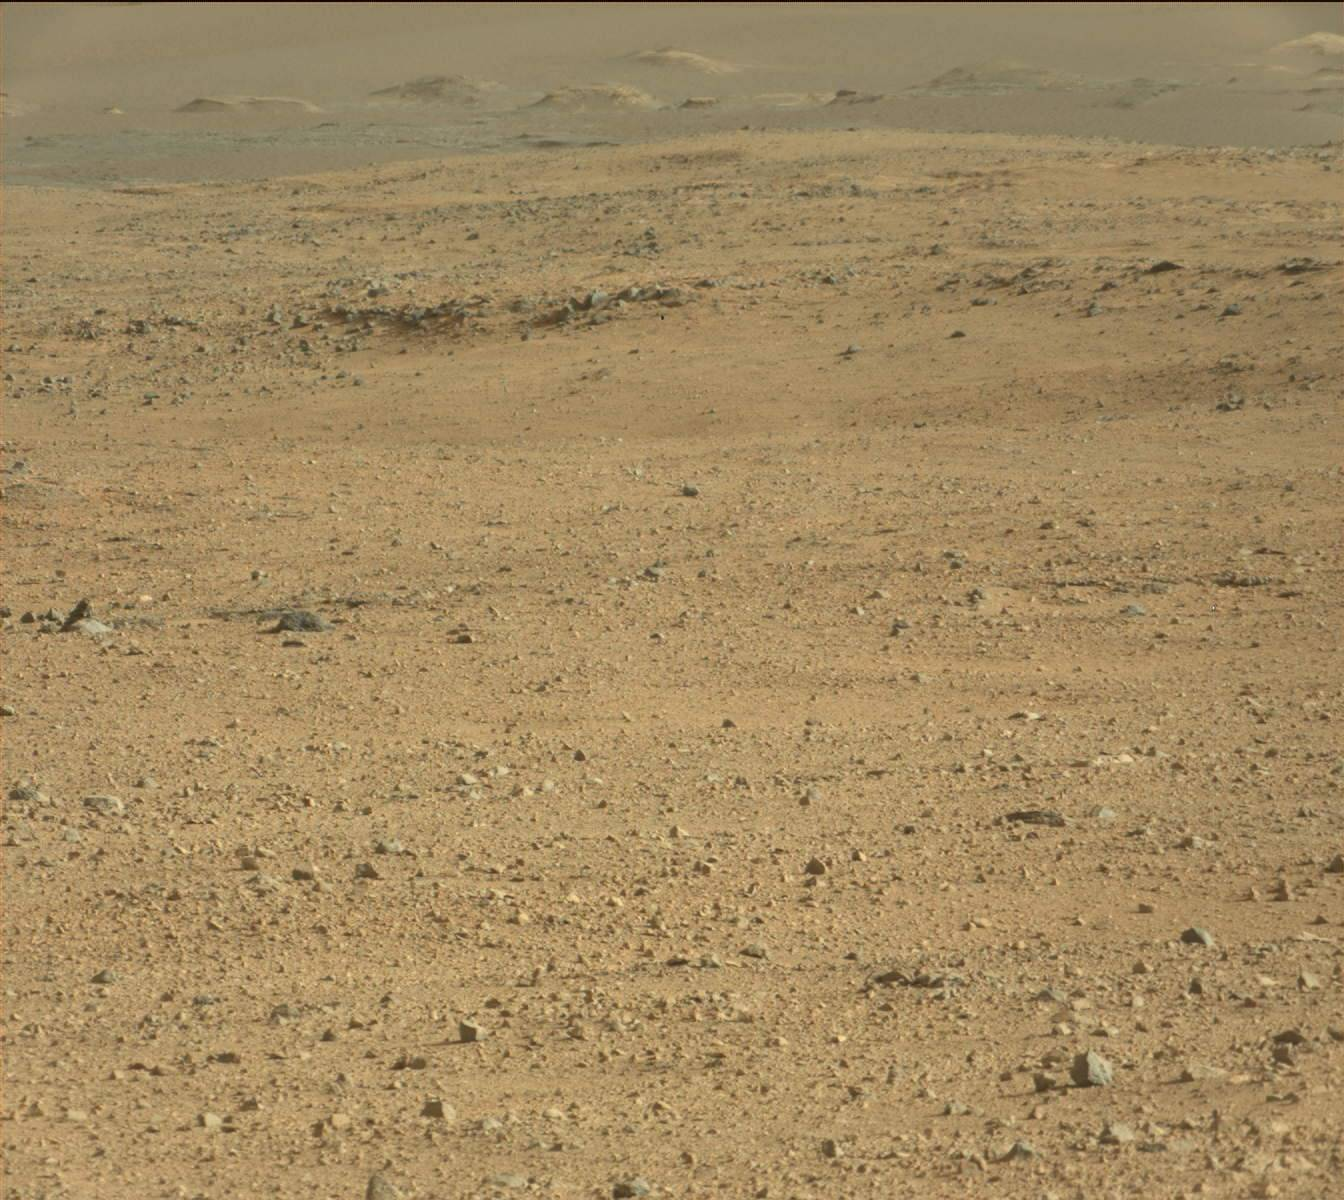 Nasa's Mars rover Curiosity acquired this image using its Mast Camera (Mastcam) on Sol 417